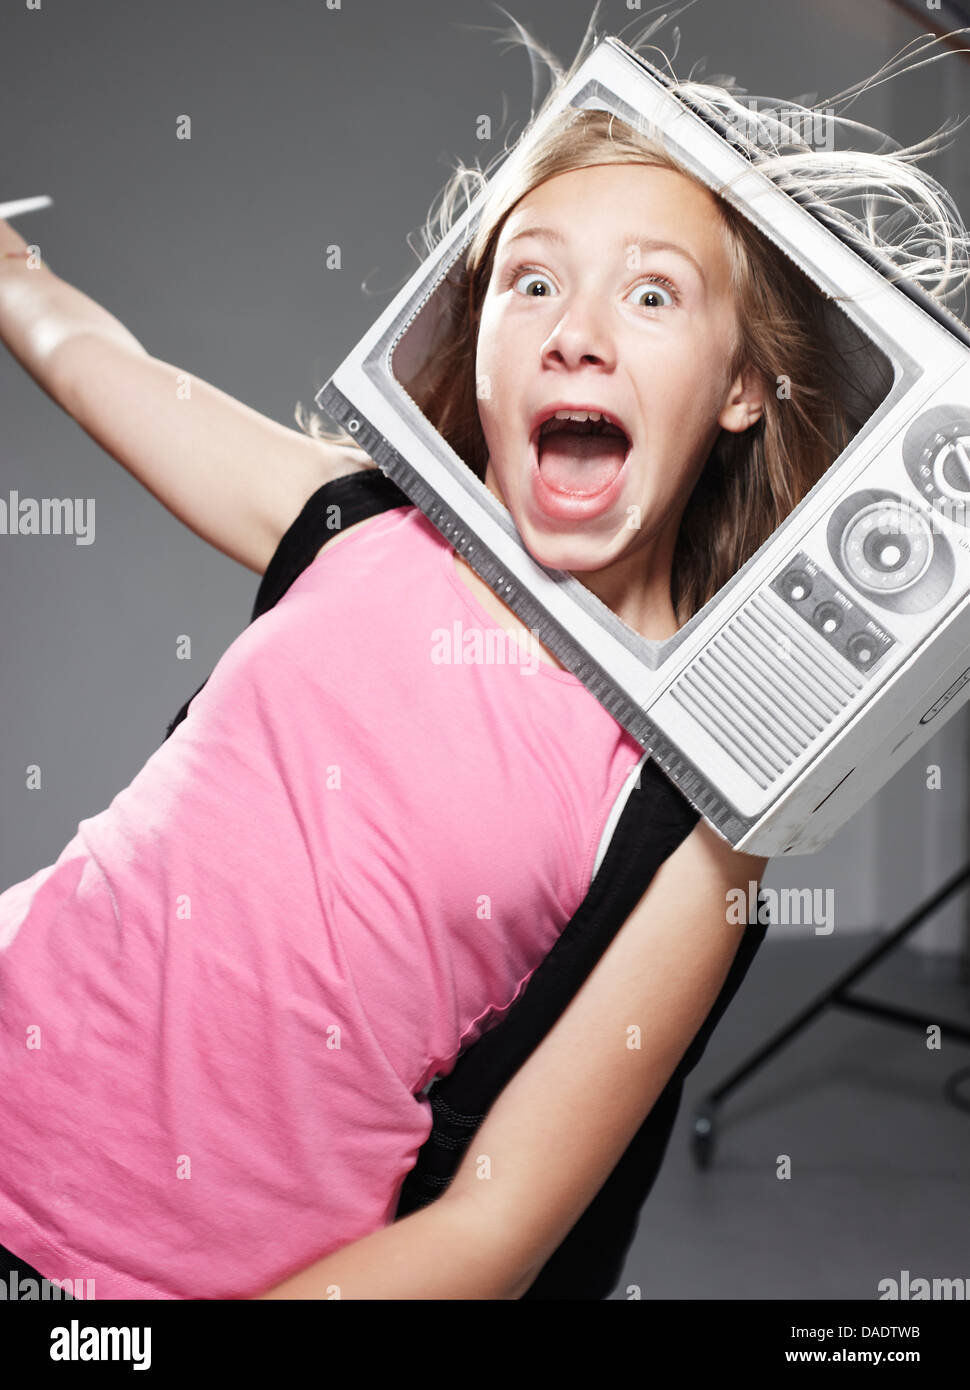 Girl screaming in paper TV against grey background - Stock Image